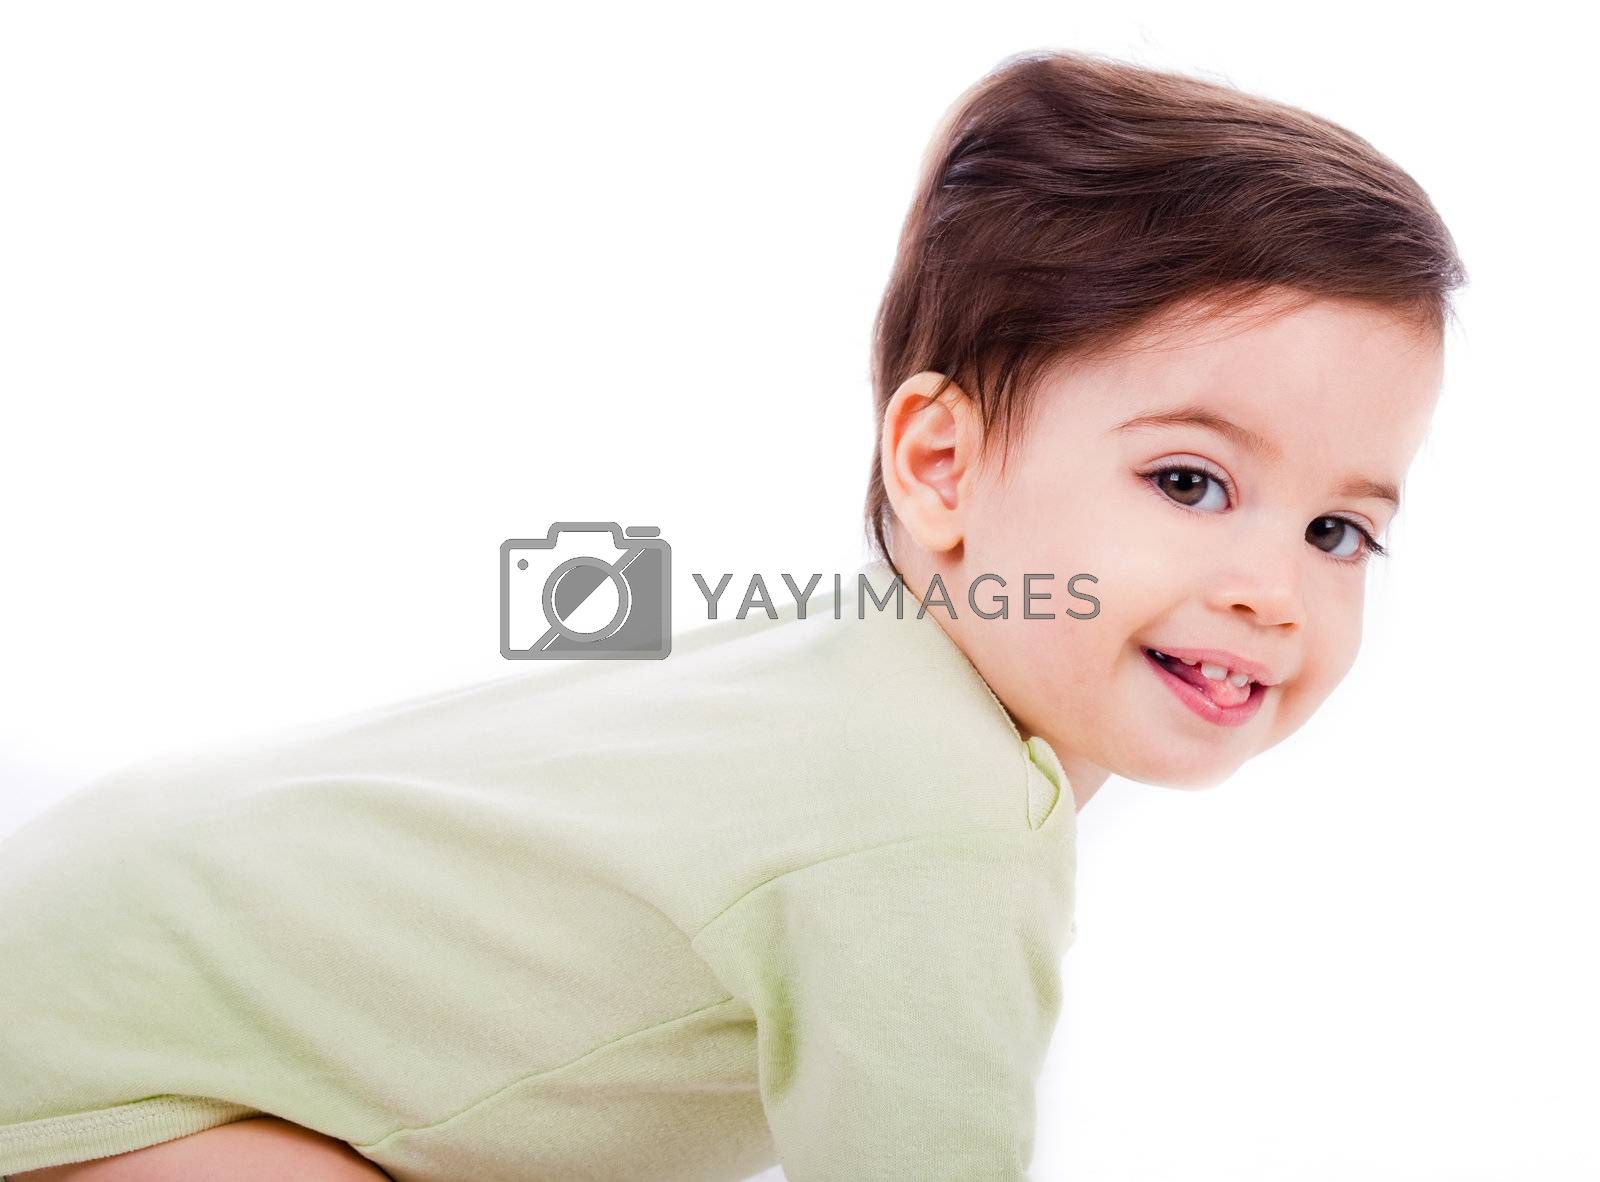 caucasian baby smile by get4net